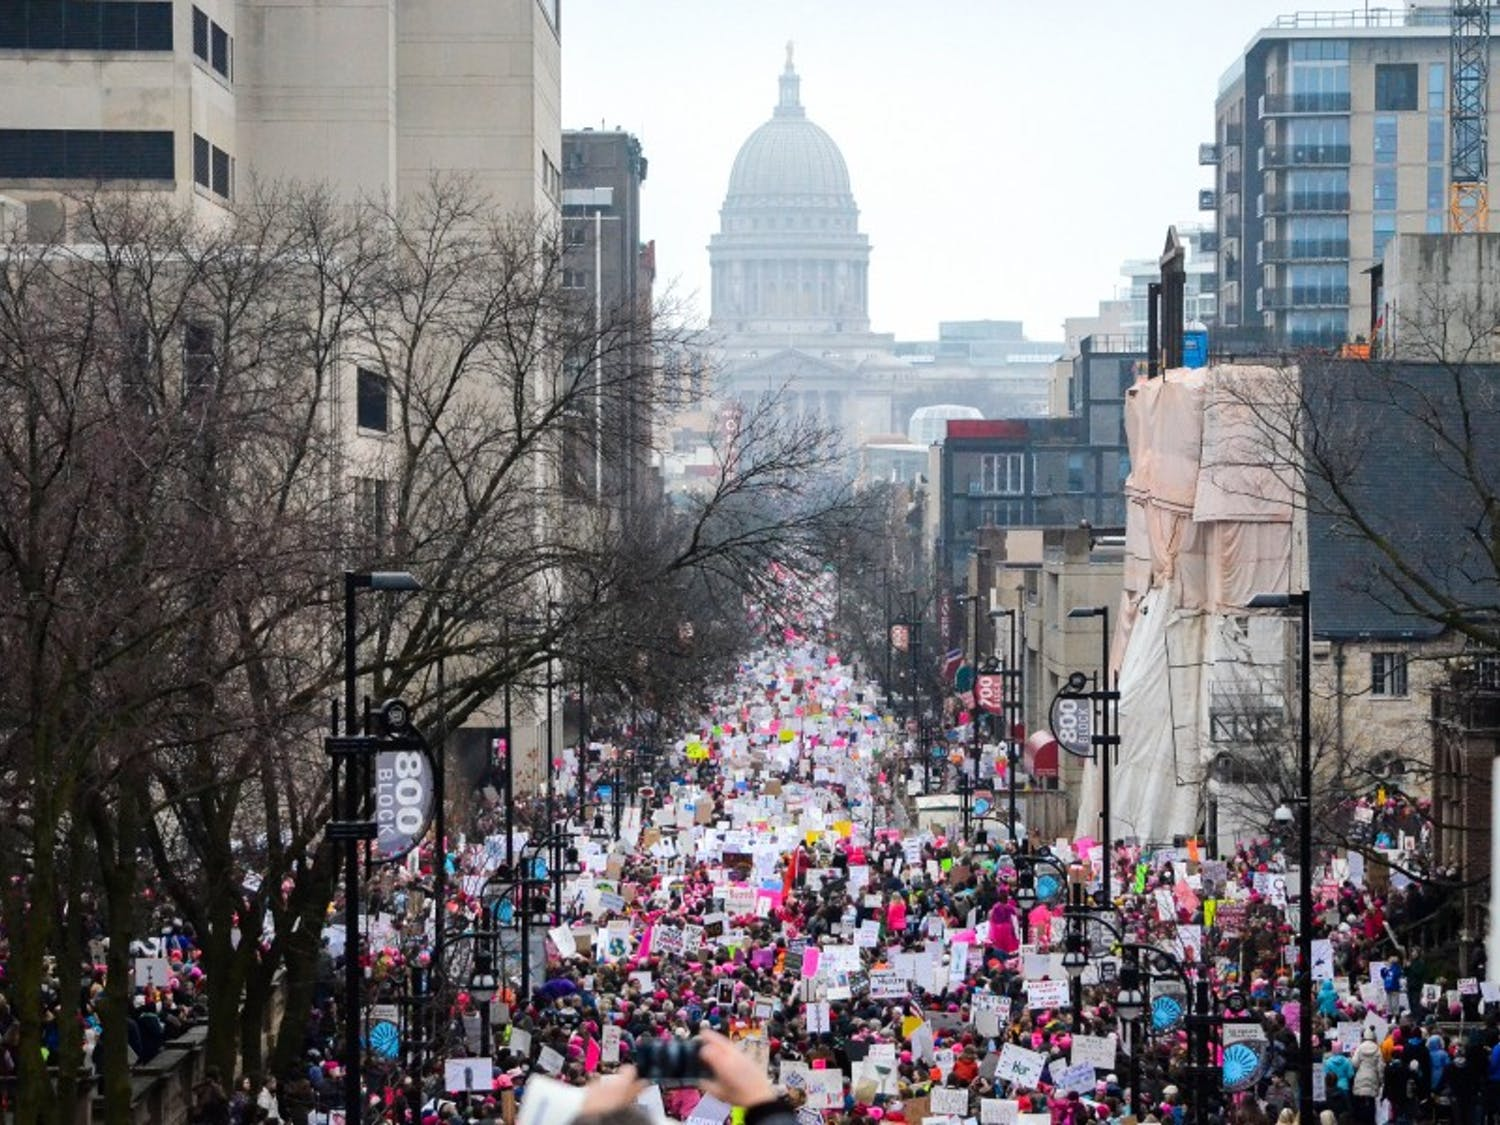 UW-Madison College Democrats praised the Women's March on Madison, which drew 100,000 protesters, while Republicans said they respected the right to peaceful protest.